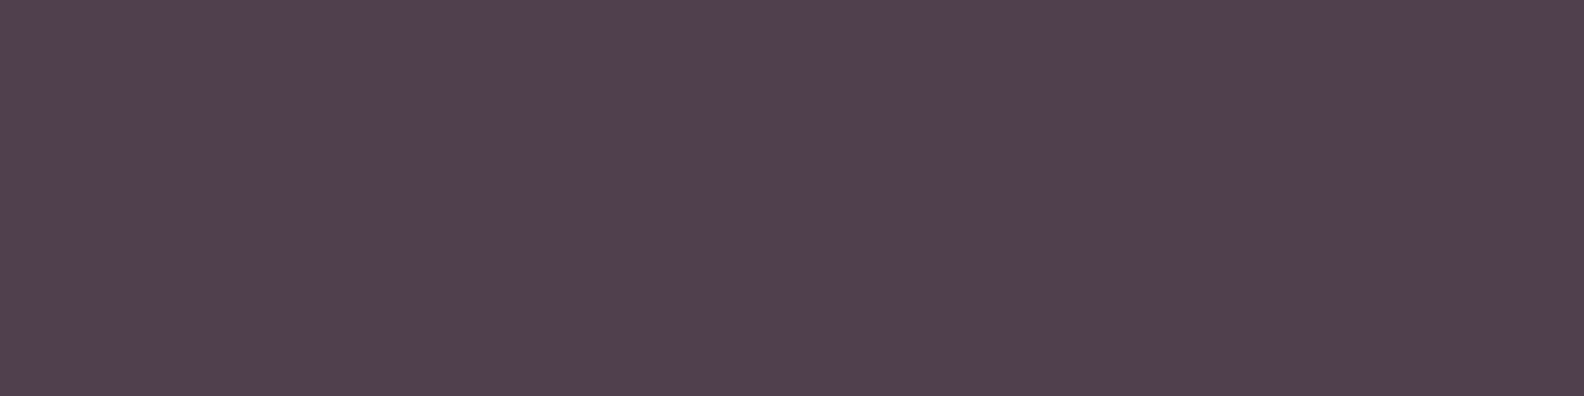 1584x396 Purple Taupe Solid Color Background